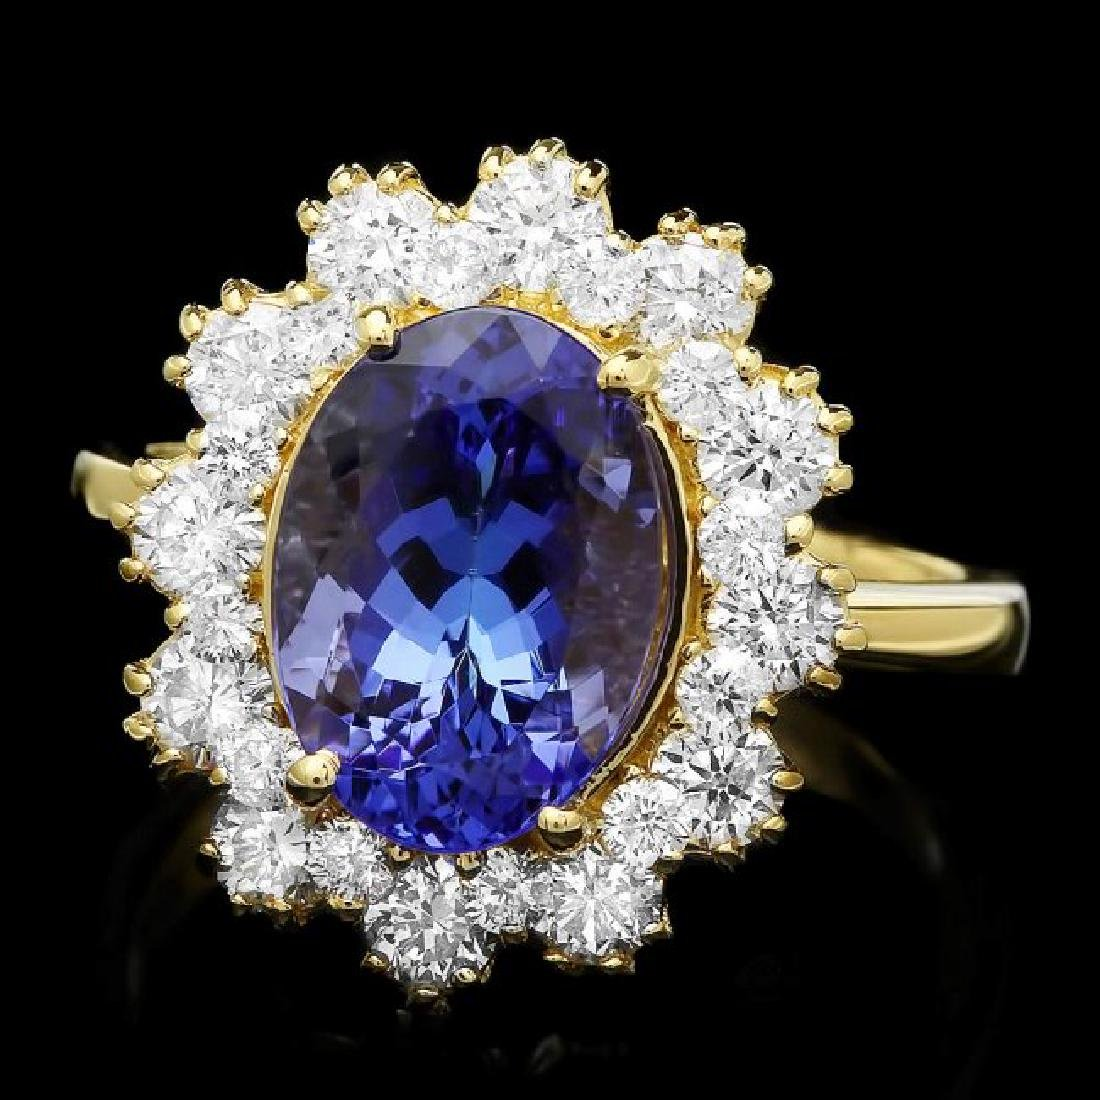 14k Gold 3.69ct Tanzanite 1.35ct Diamond Ring